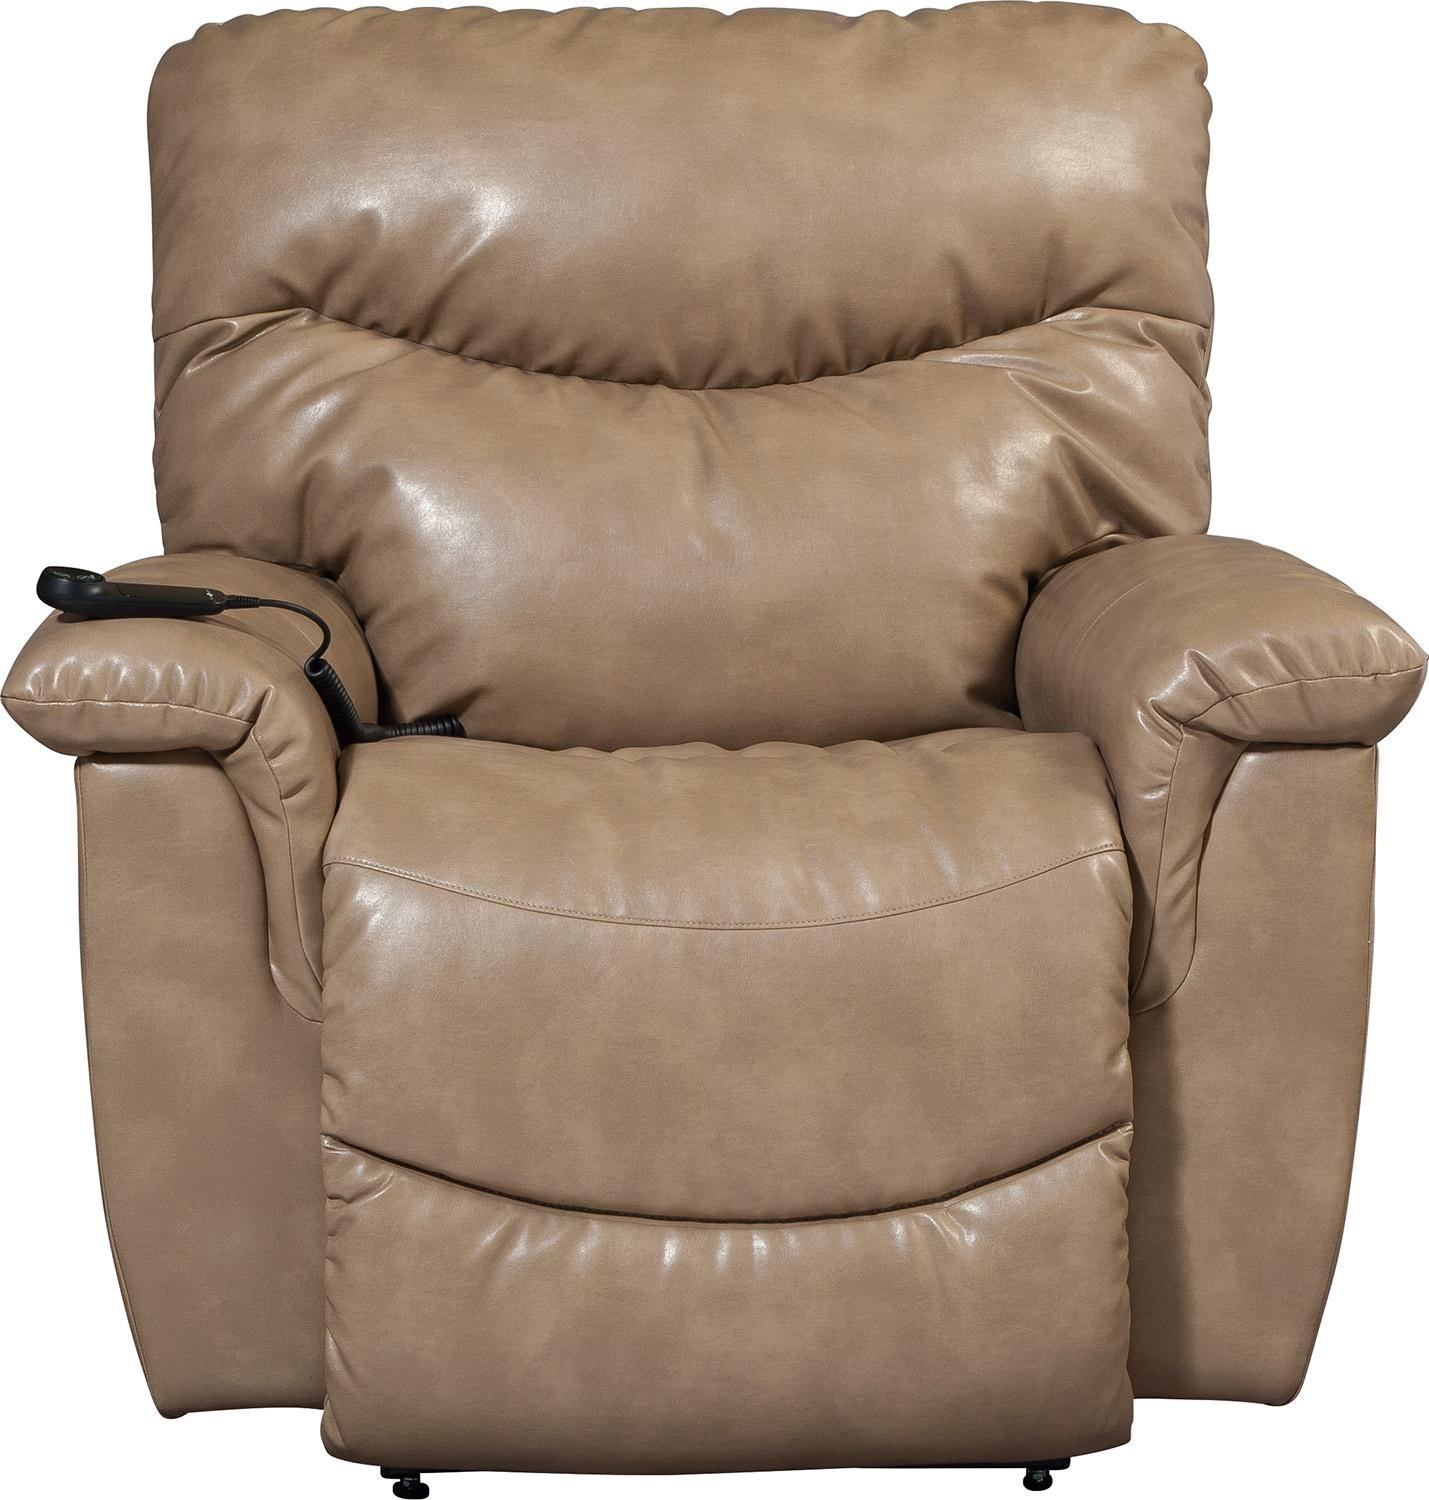 La-Z-Boy James Casual Silver Luxury Lift? Power Recliner - Gill Brothers Furniture - Lift Chairs  sc 1 st  Gill Brothers Furniture : lazy boy lift chair recliners - islam-shia.org